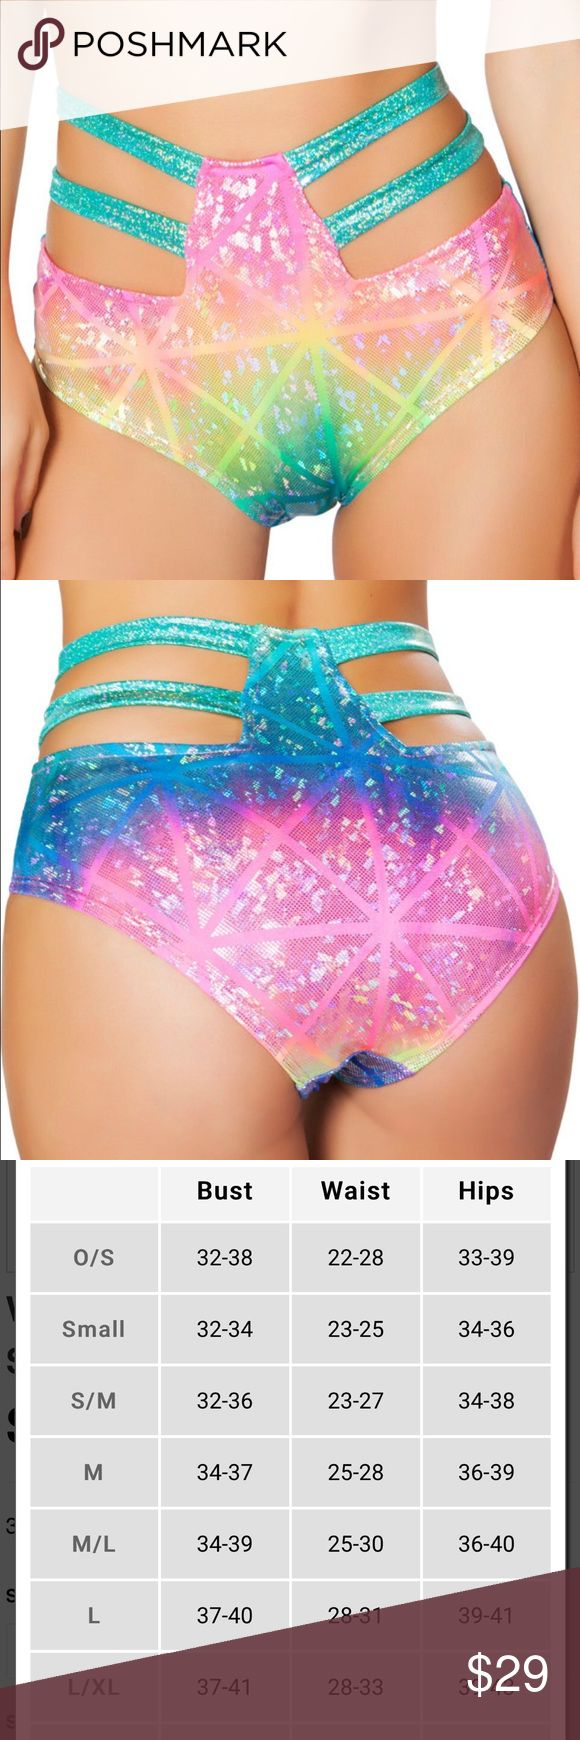 Strapped holographic high waist multi rave shorts These popular high waist shorts are just what you need to compliment your next rave outfit! These shorts provide extra coverage with a sexy strap detail. Sizes come in S/M and M/L. Rave Wonderland Intimates & Sleepwear Panties